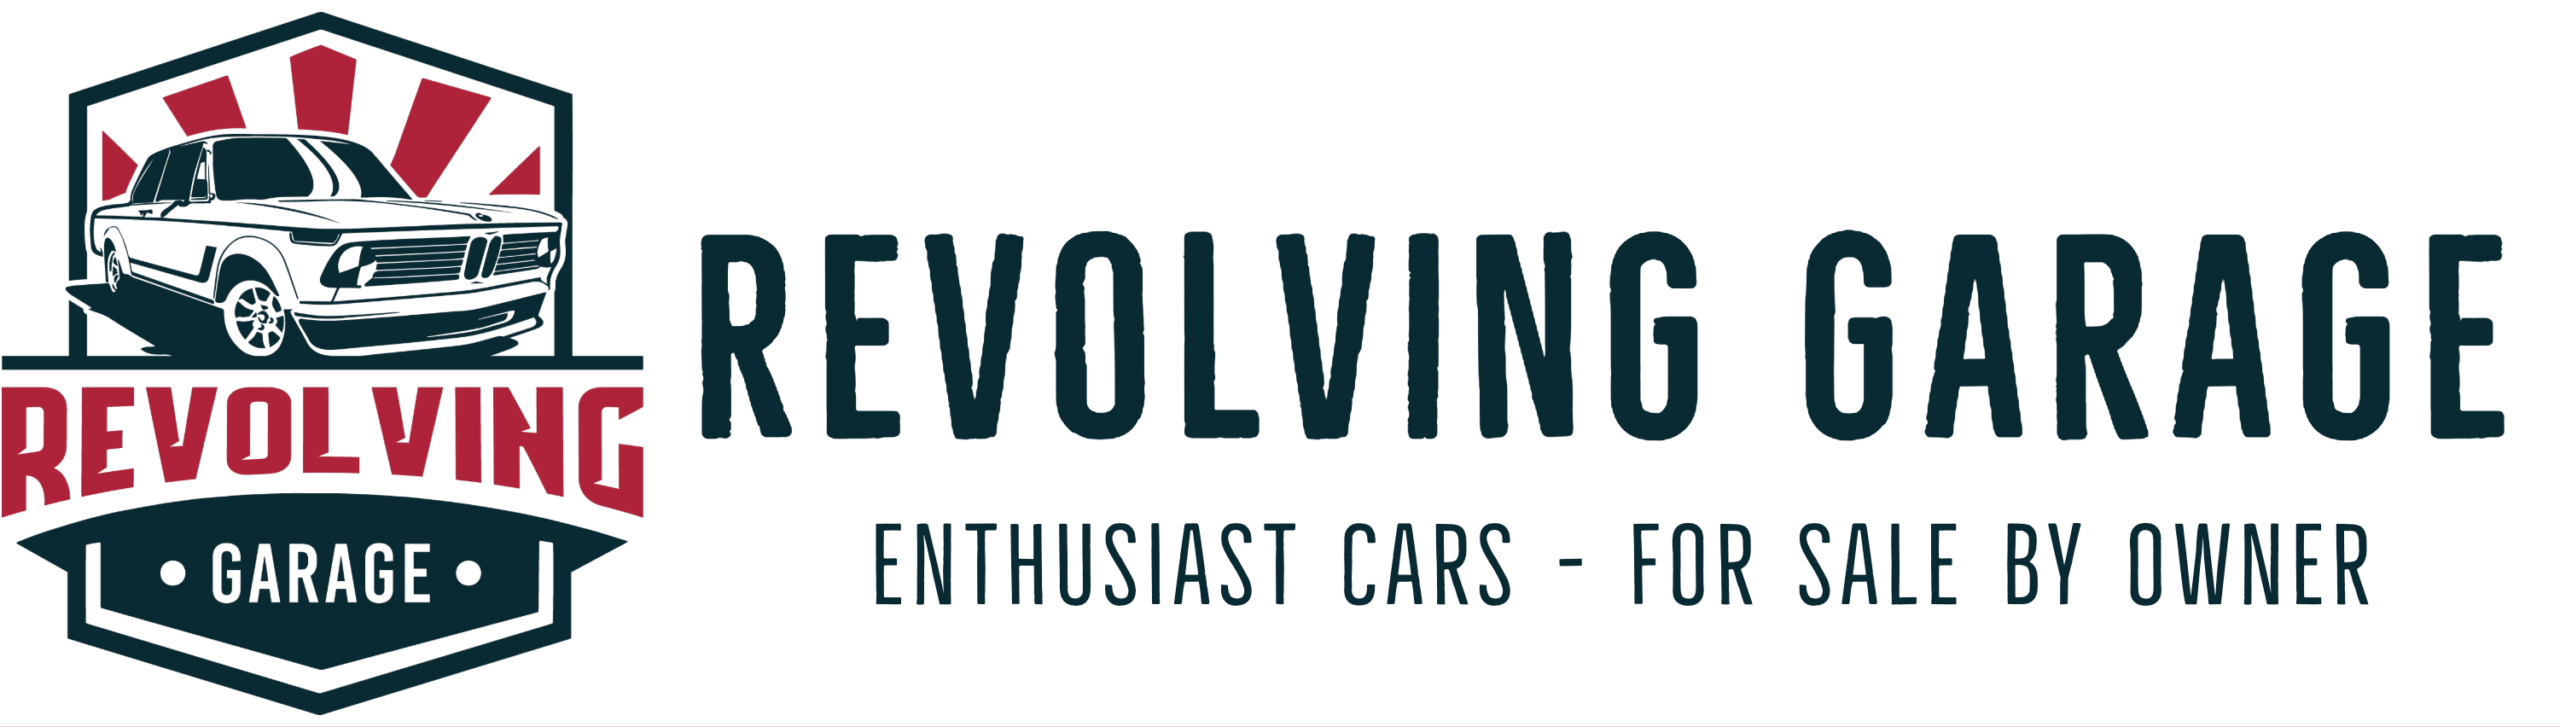 Revolving Garage | Enthusiast Car Listings FSBO